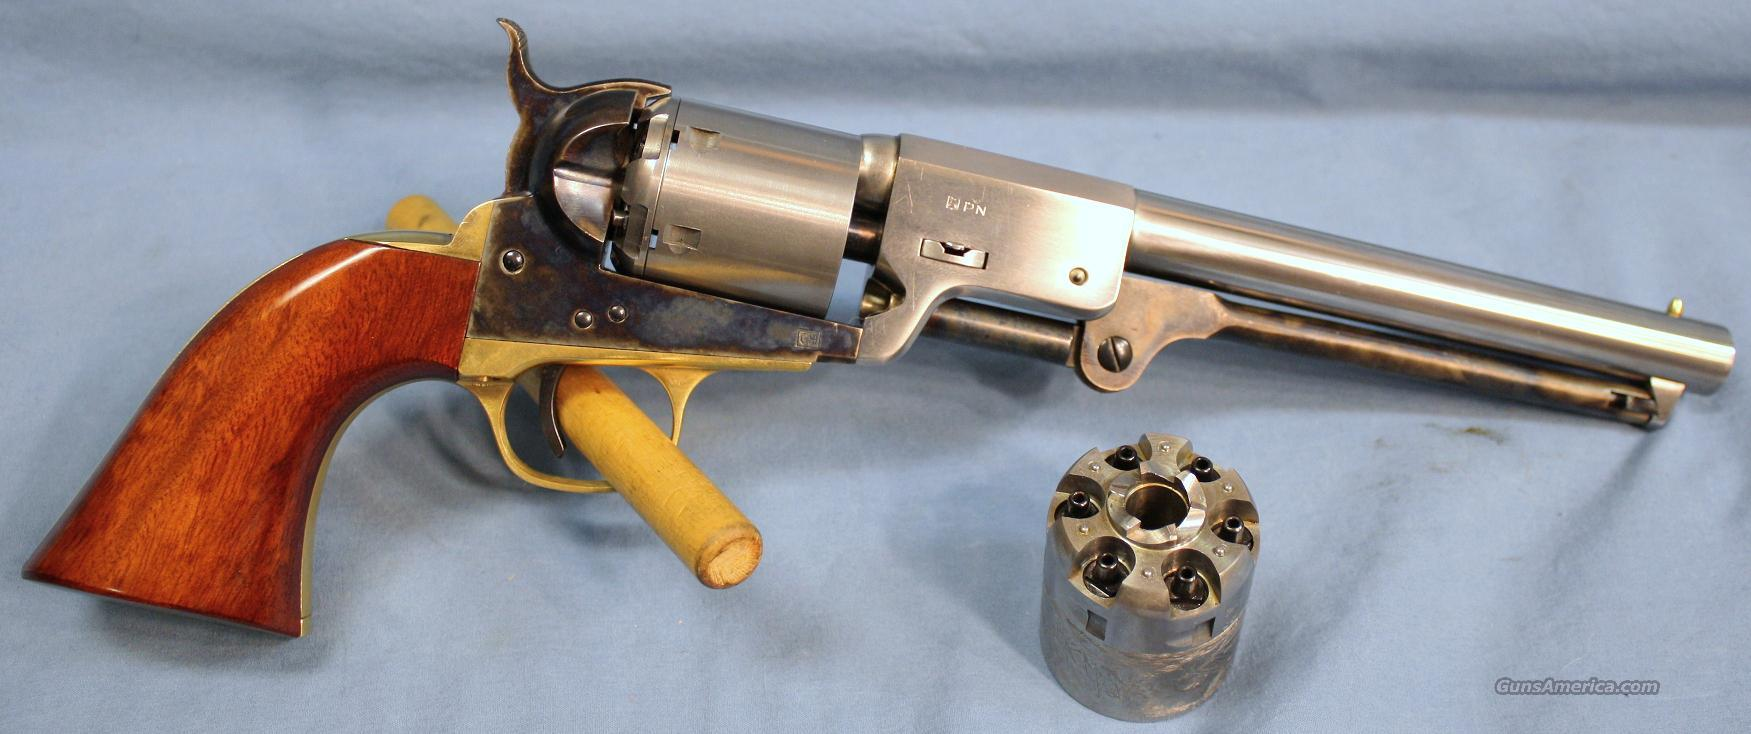 Cimarron Model 1862 Leech and Rigdon Single Action Percussion Revolver, .36 caliber  Guns > Pistols > Cimmaron Pistols